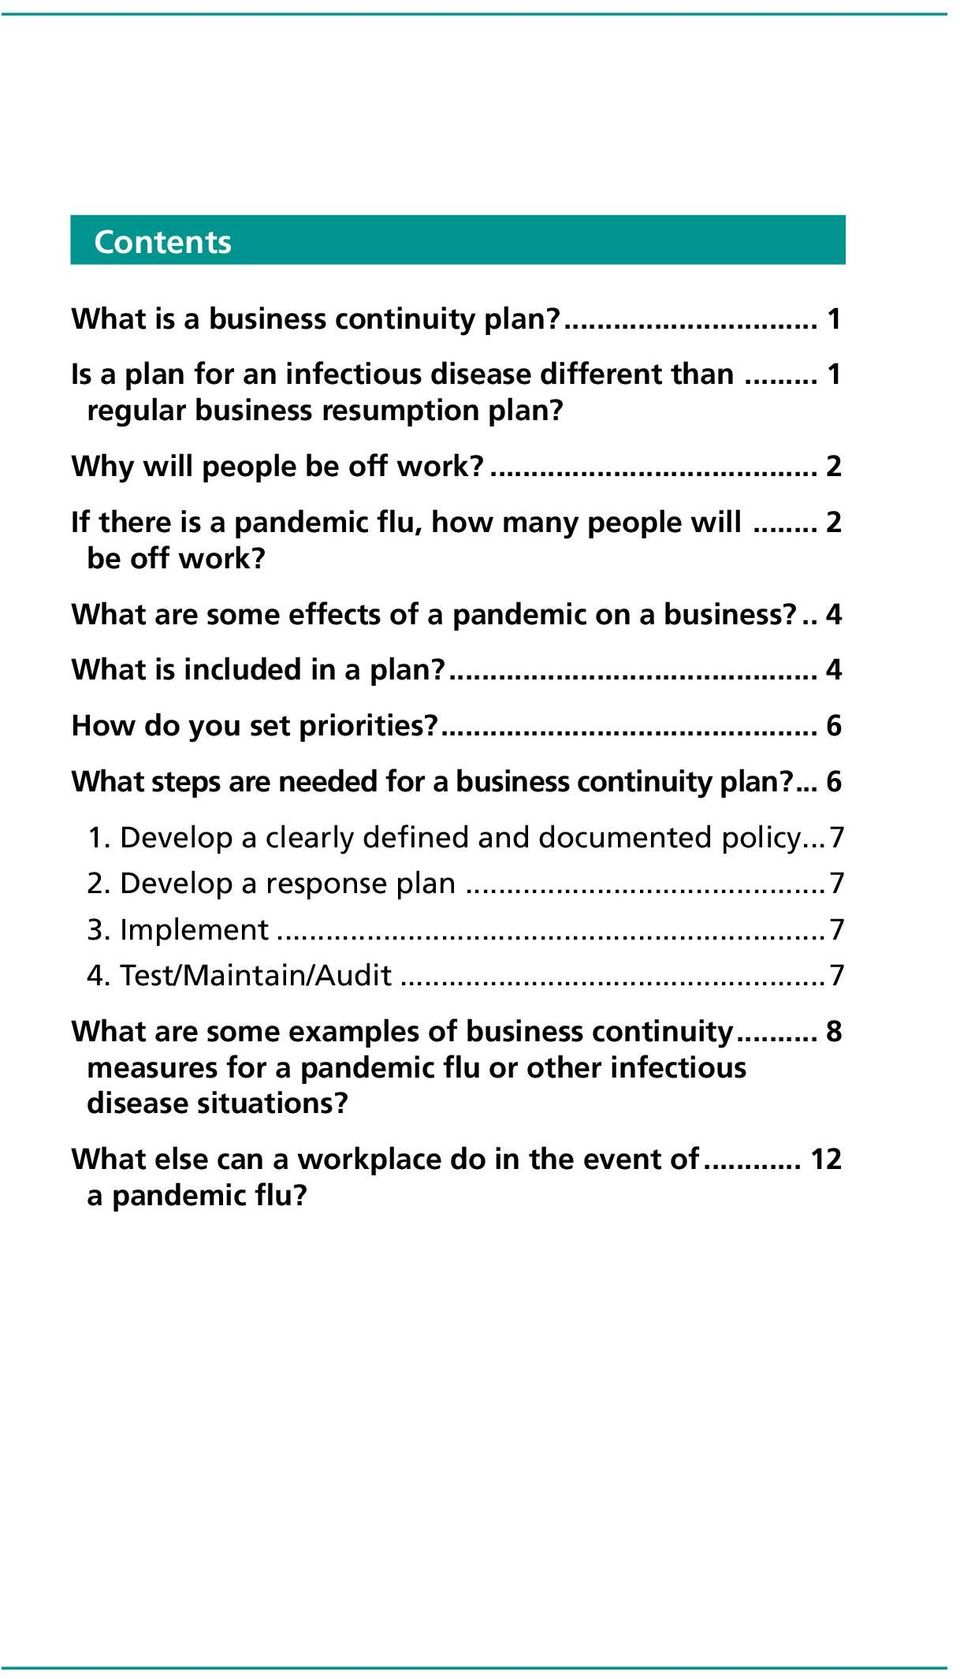 ... 4 How do you set priorities?... 6 What steps are needed for a business continuity plan?... 6 1. Develop a clearly defined and documented policy...7 2. Develop a response plan...7 3.